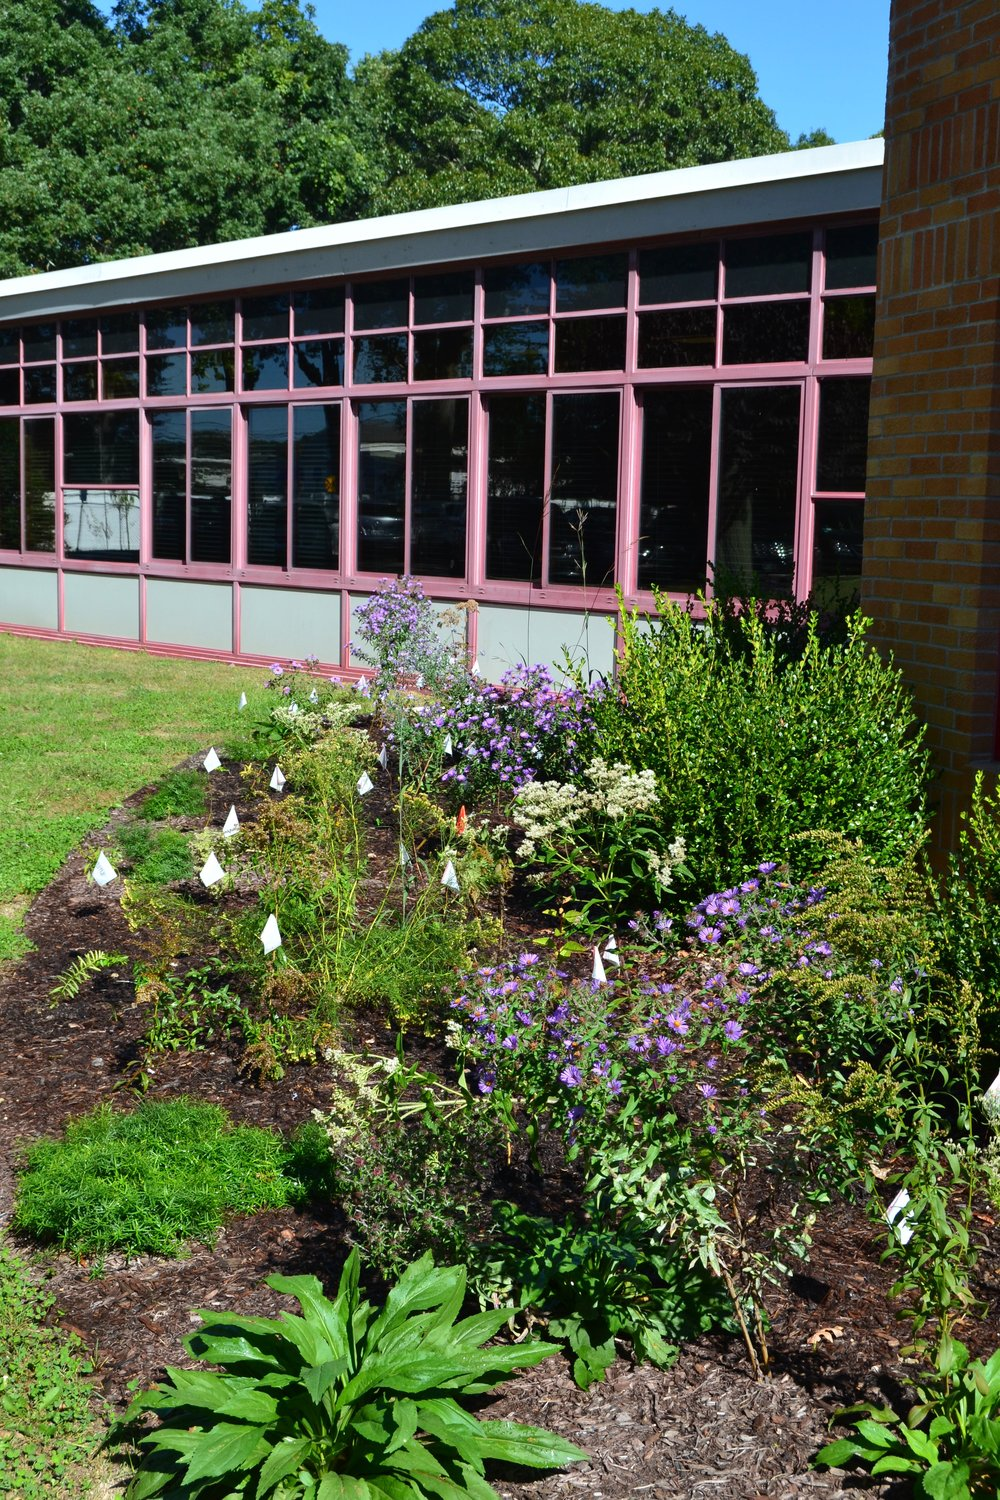 Cherry Avenue School, Sayville